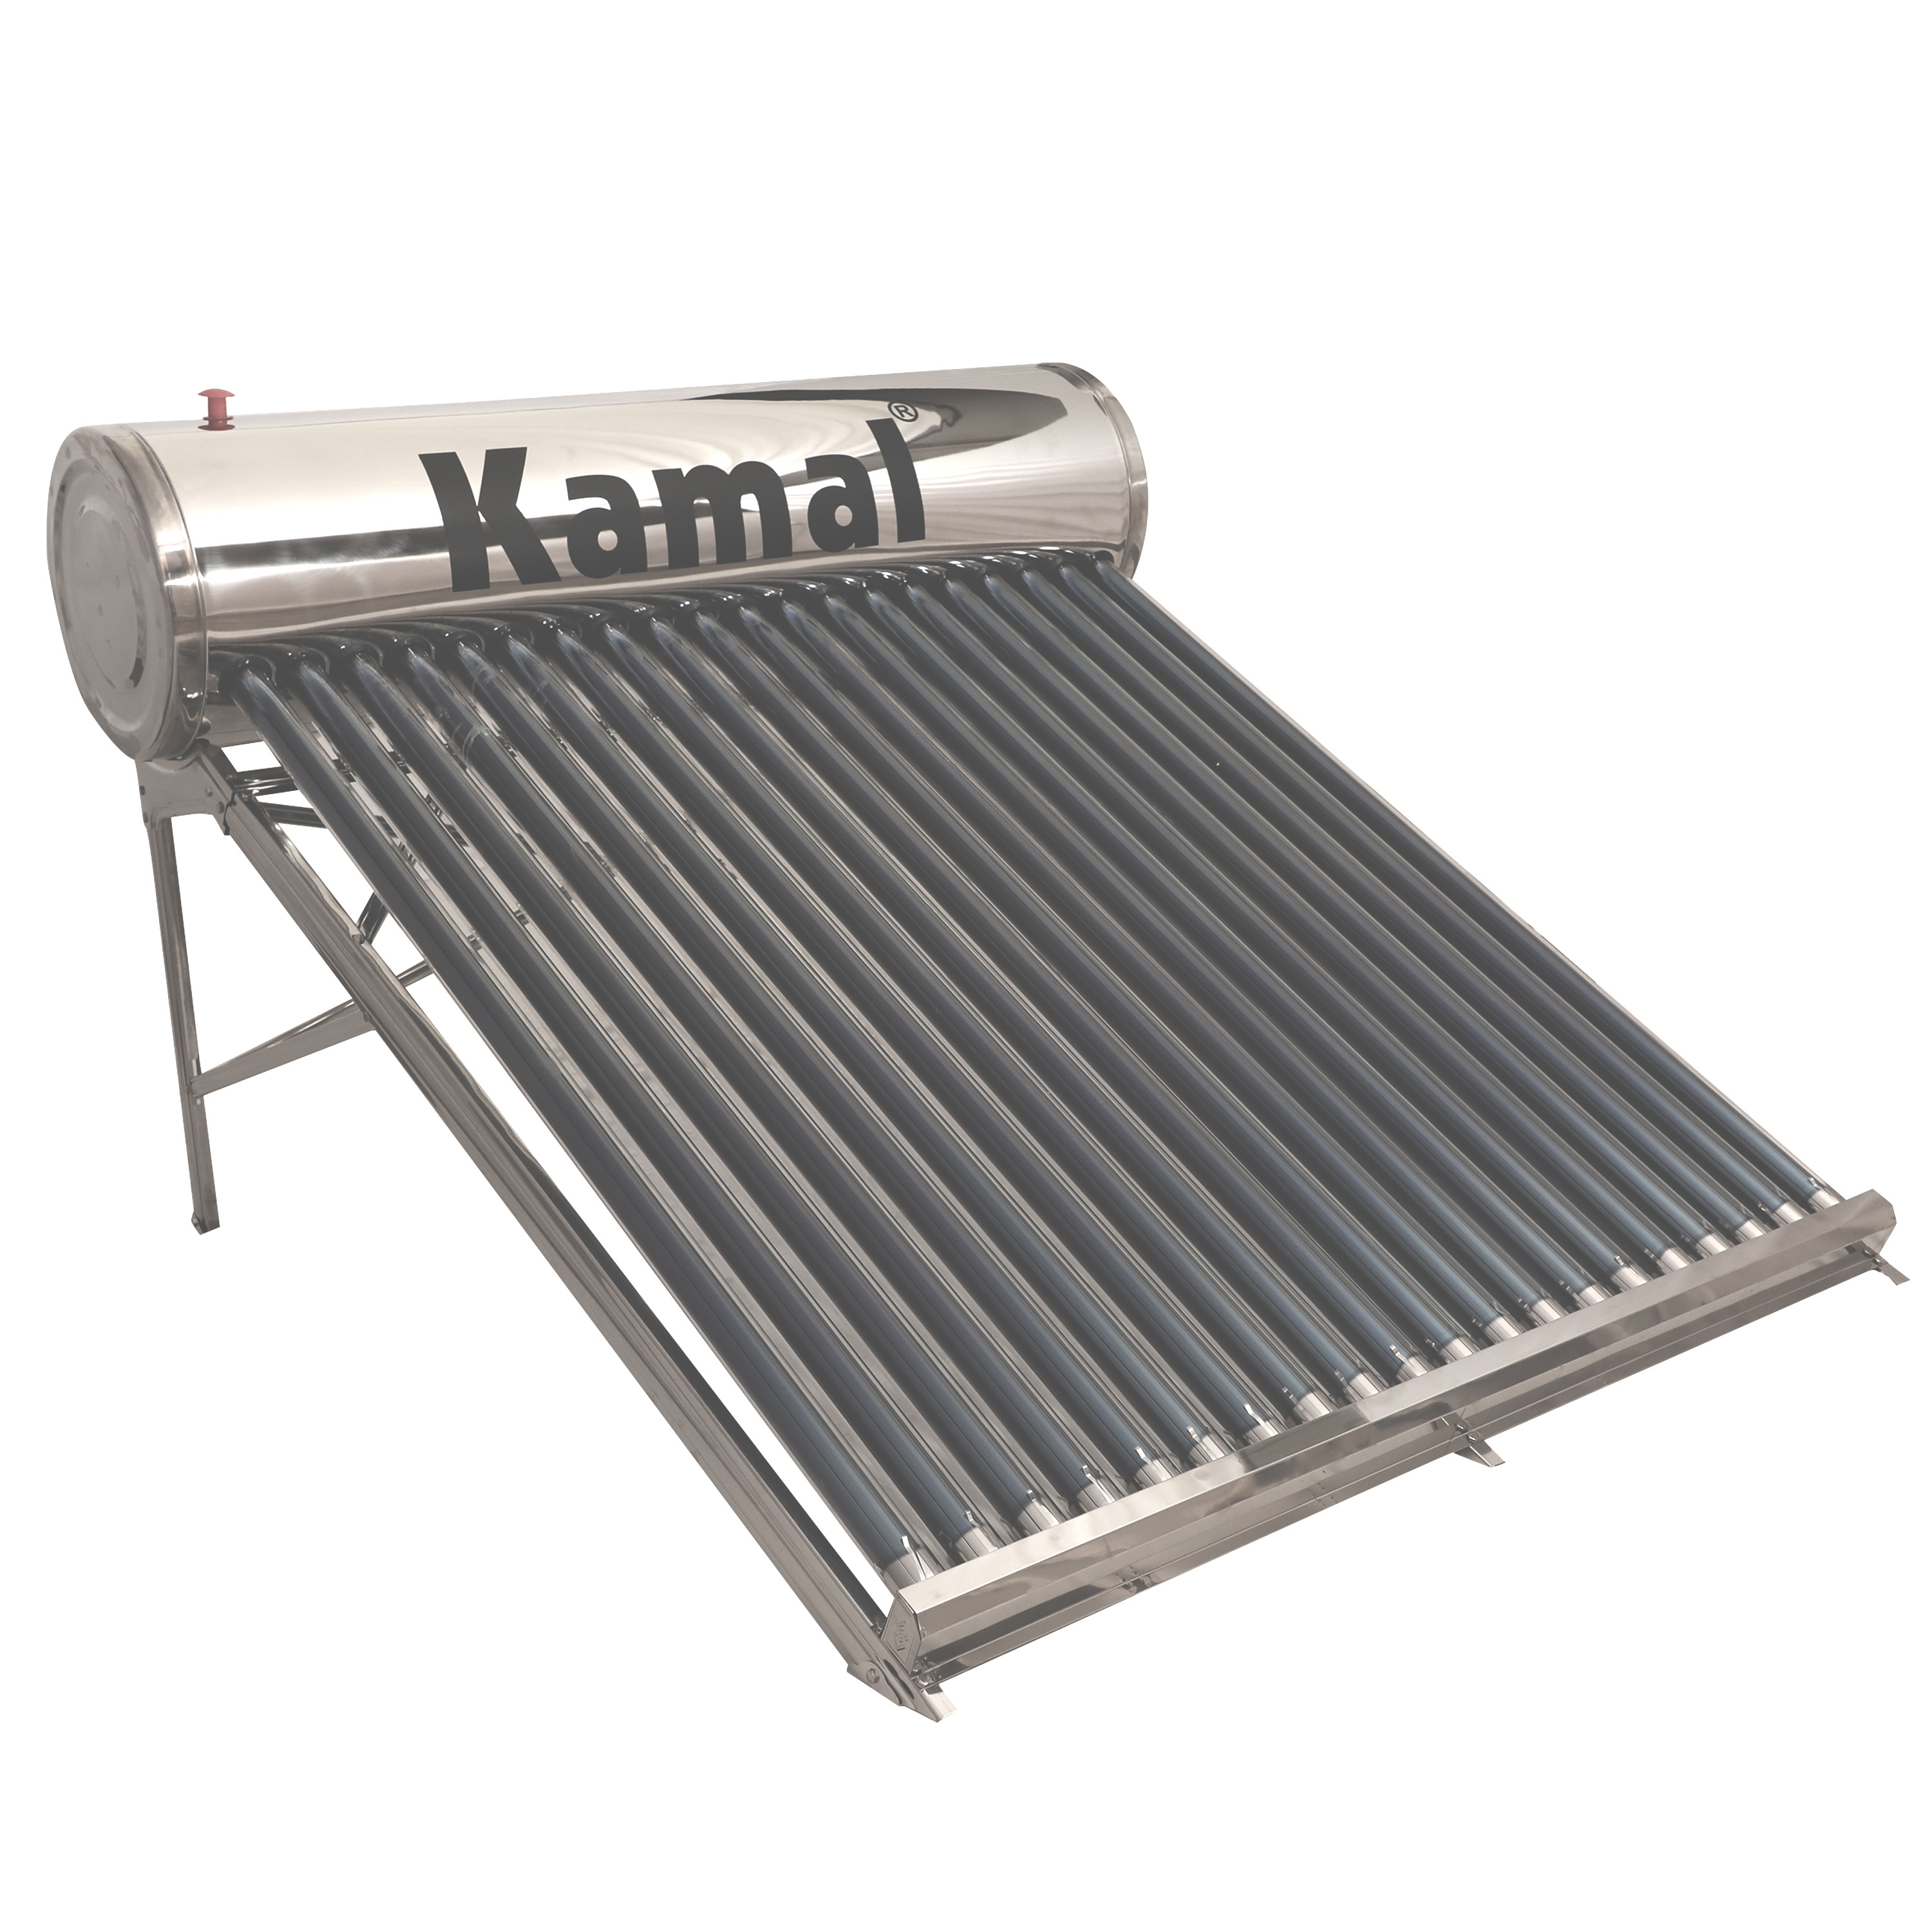 200LPD ETC Outer SS (Airvent) Solar Water Heater